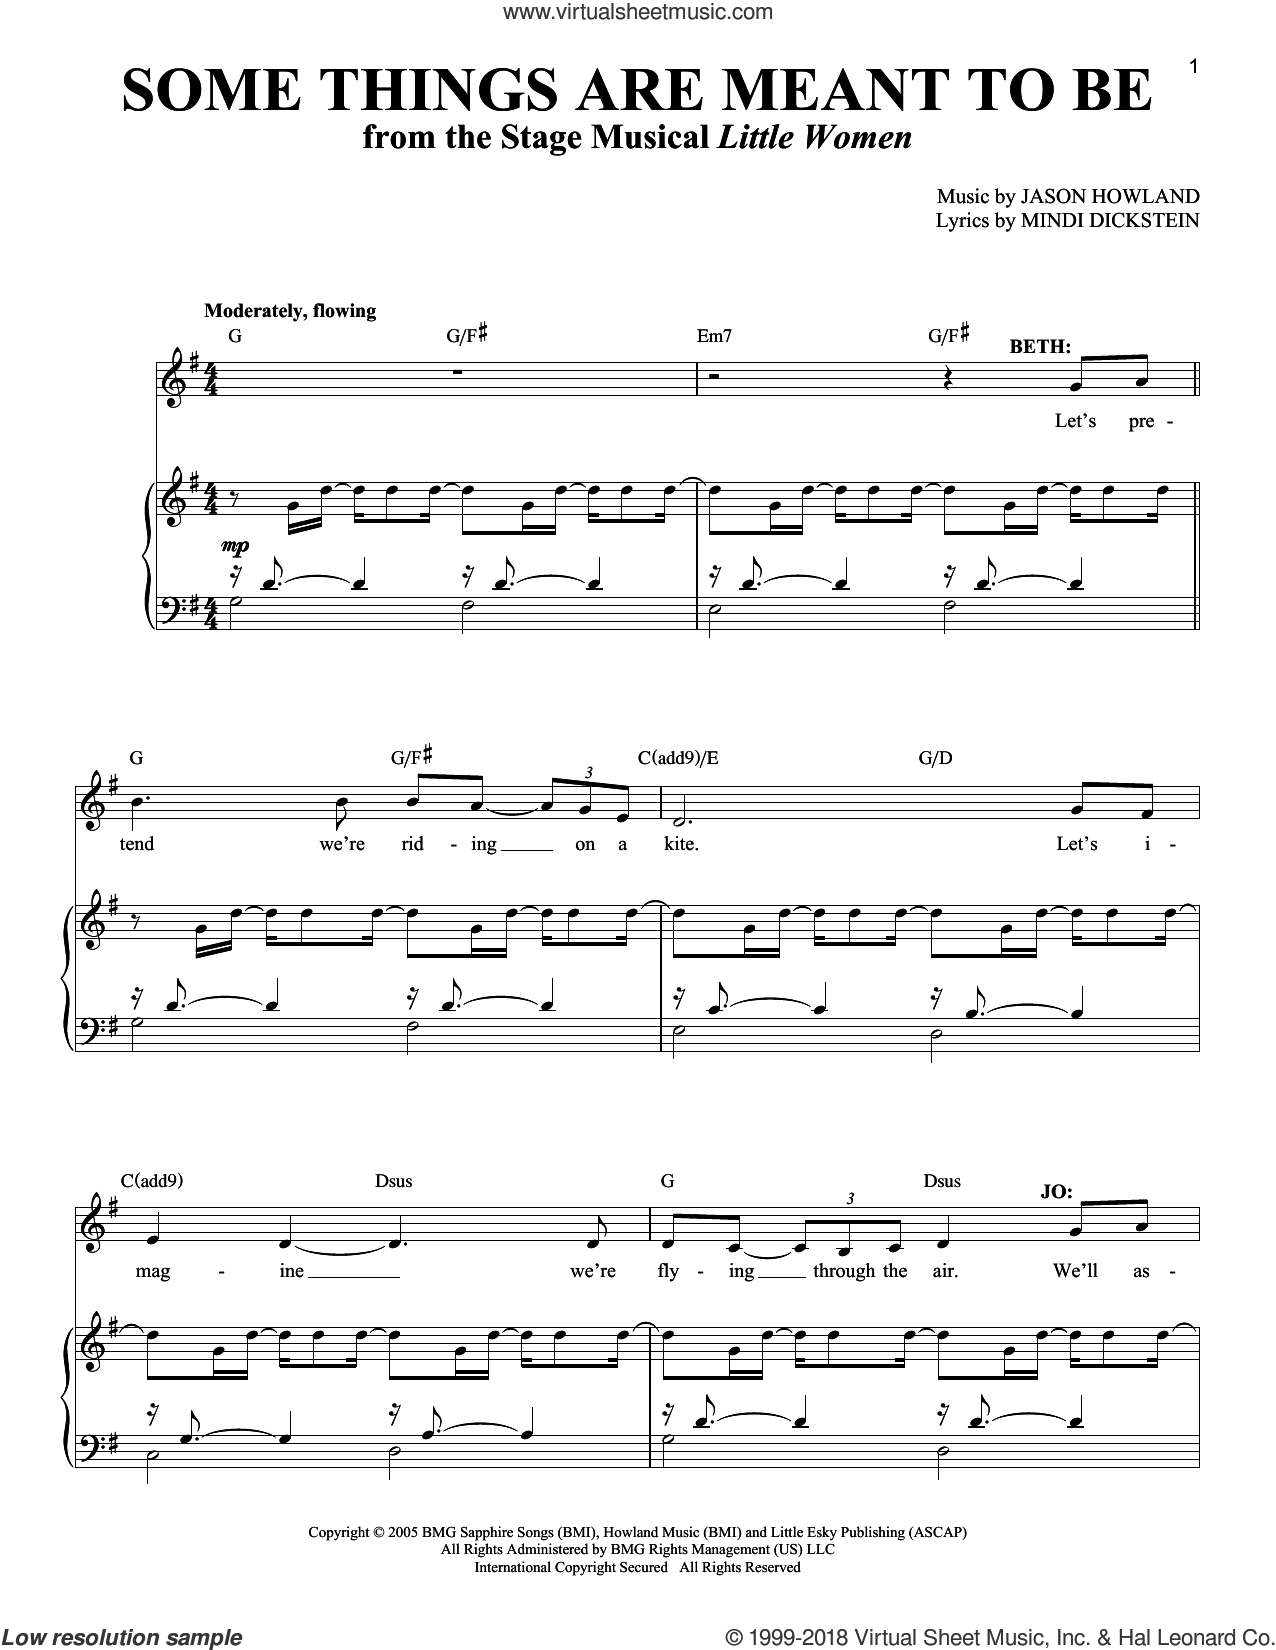 Some Things Are Meant To Be sheet music for two voices and piano by Mindi Dickstein, Richard Walters and Jason Howland, intermediate skill level